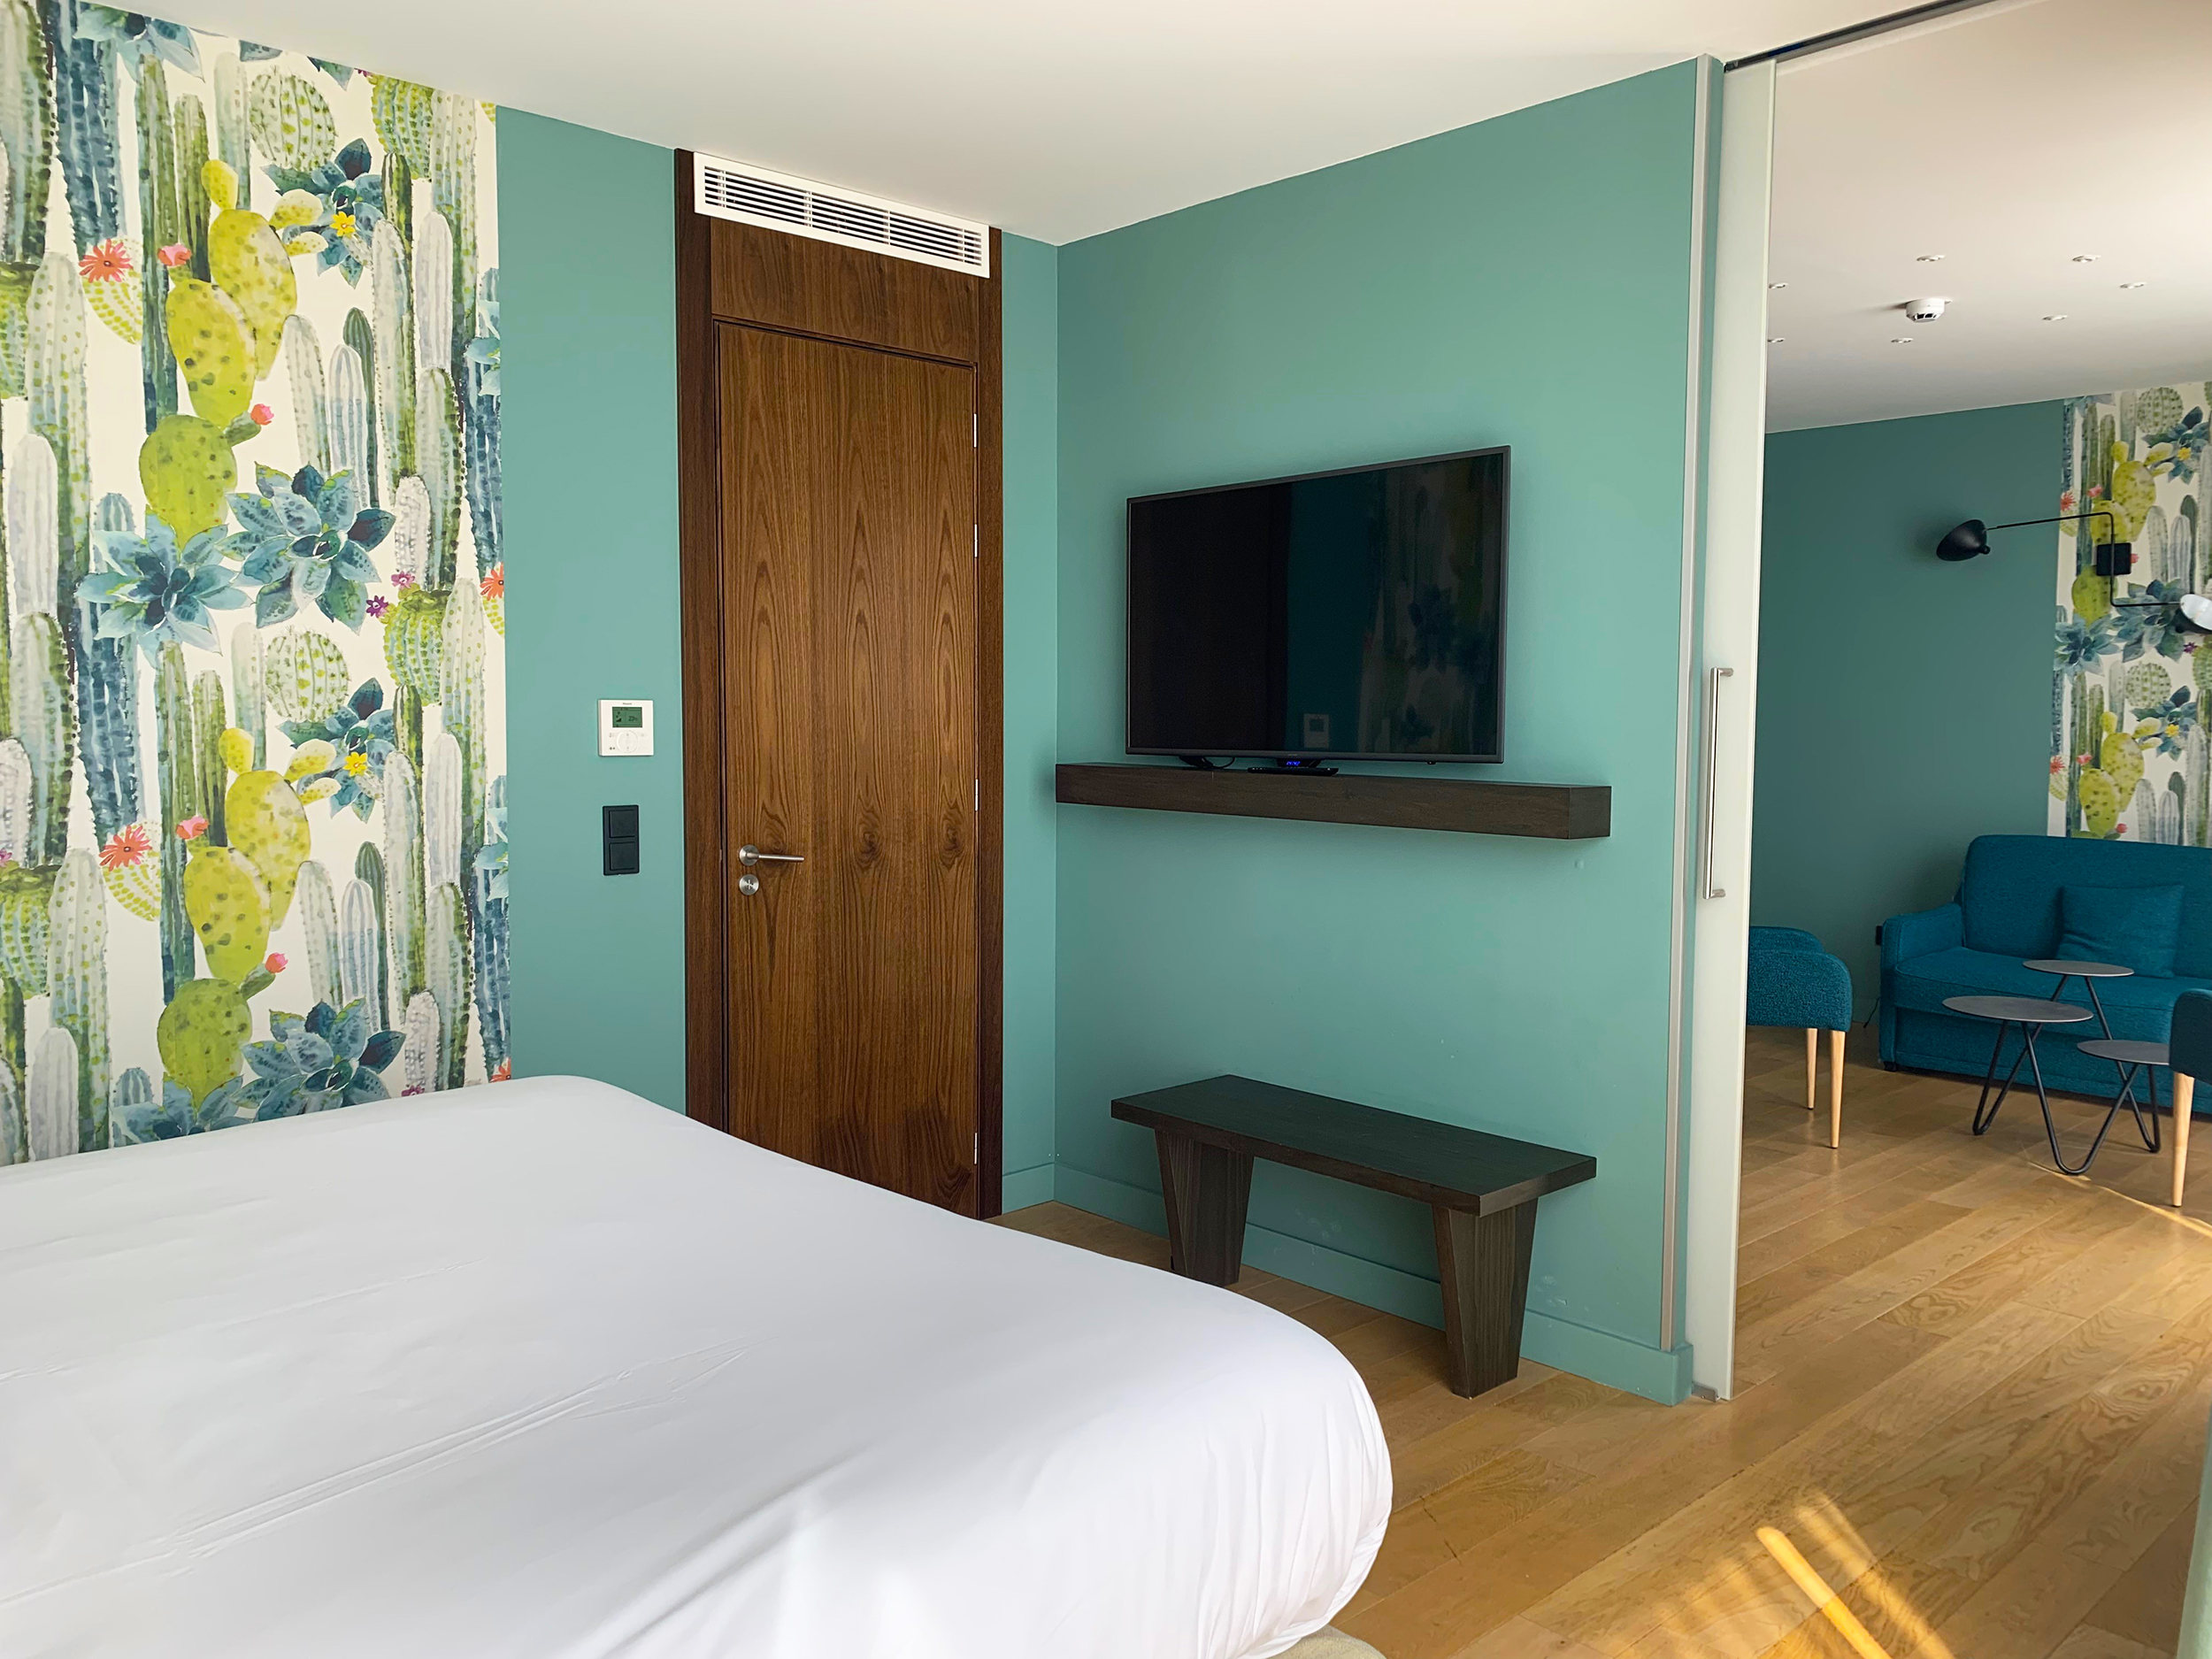 blog voyage, blog voyages, blogueur voyages, blogueur voyage, blog hotels de luxe, influenceur hotels, influenceur hotel, croatie hotels, dubrovnik hilton imperial hotel.